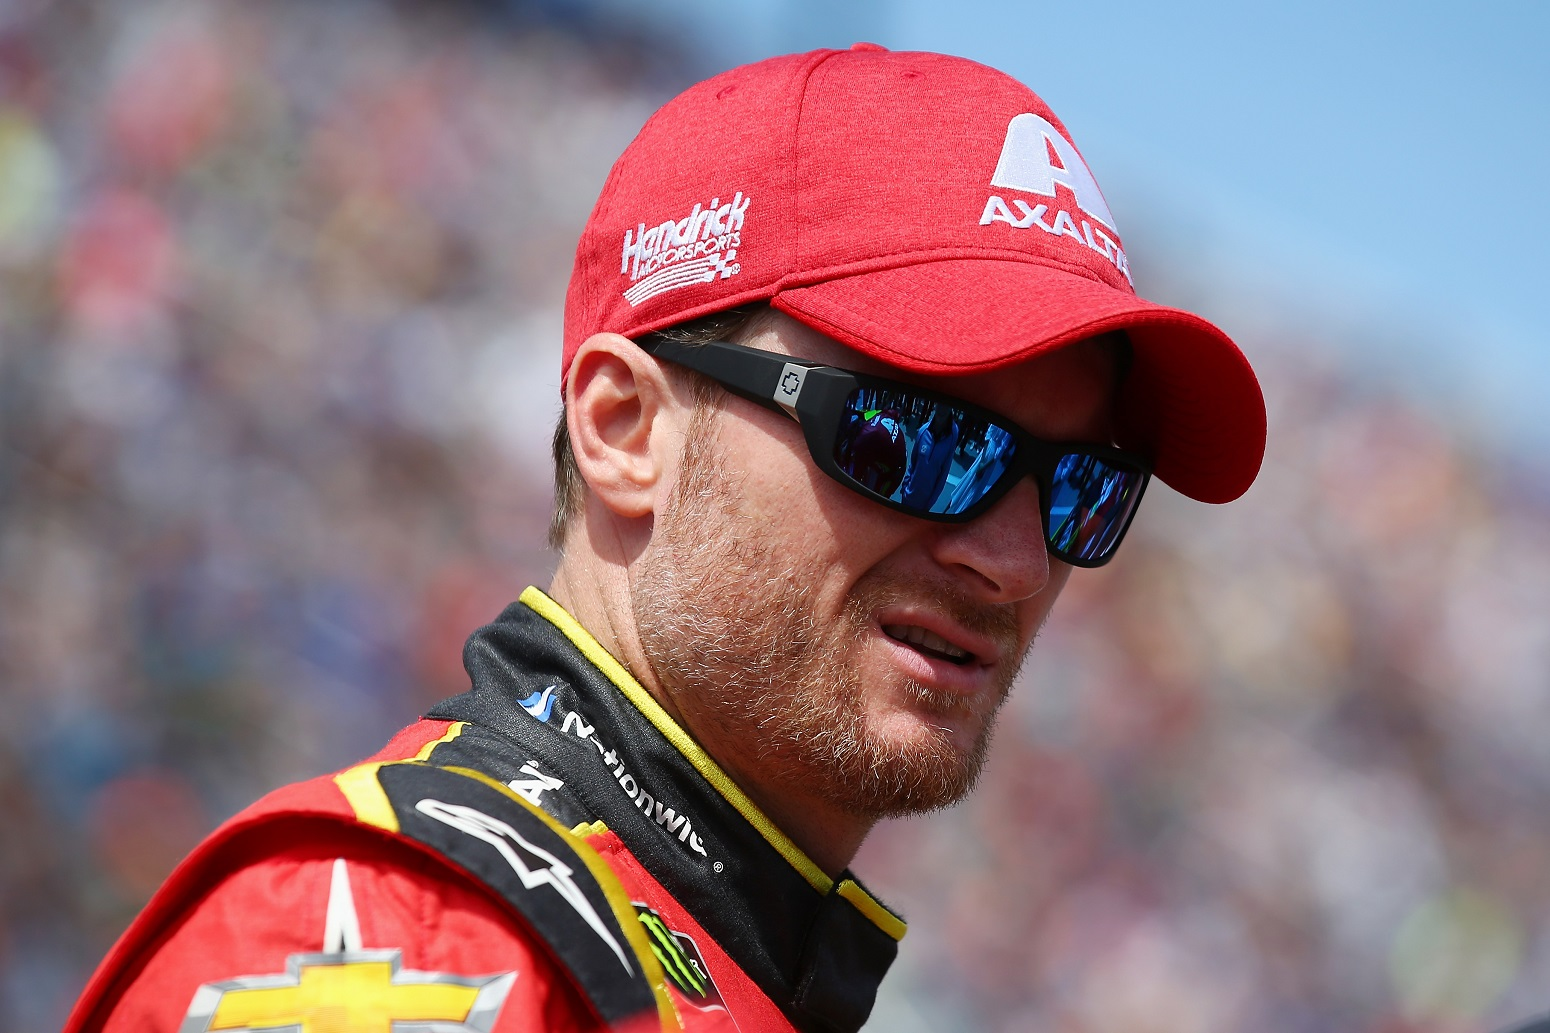 Dale Earnhardt Jr. contemplating his NASCAR tradition